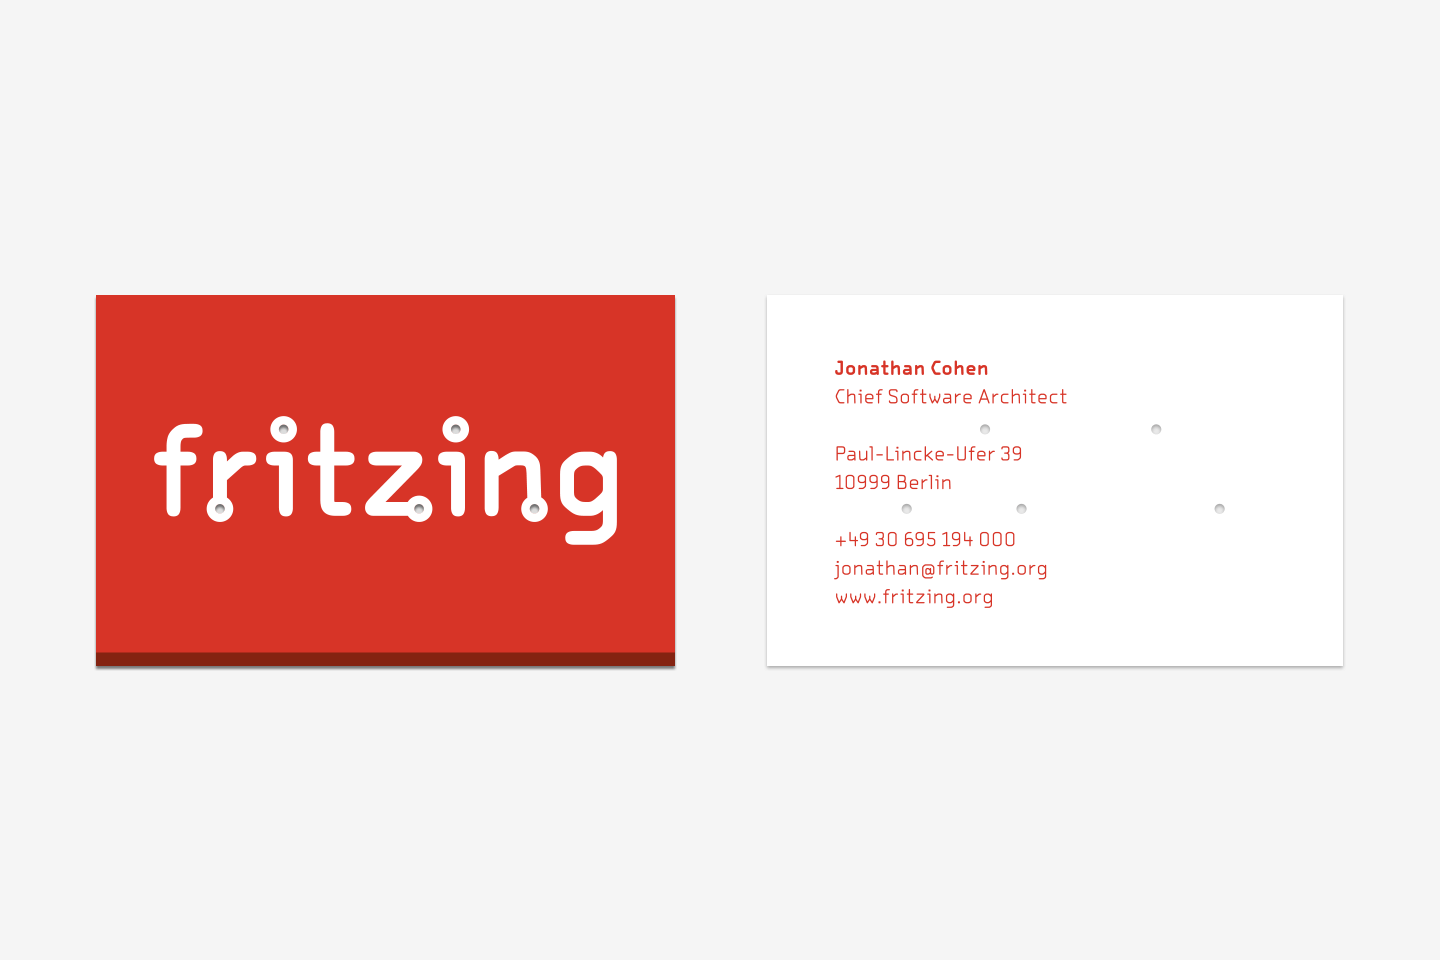 fritzing_cards_1440